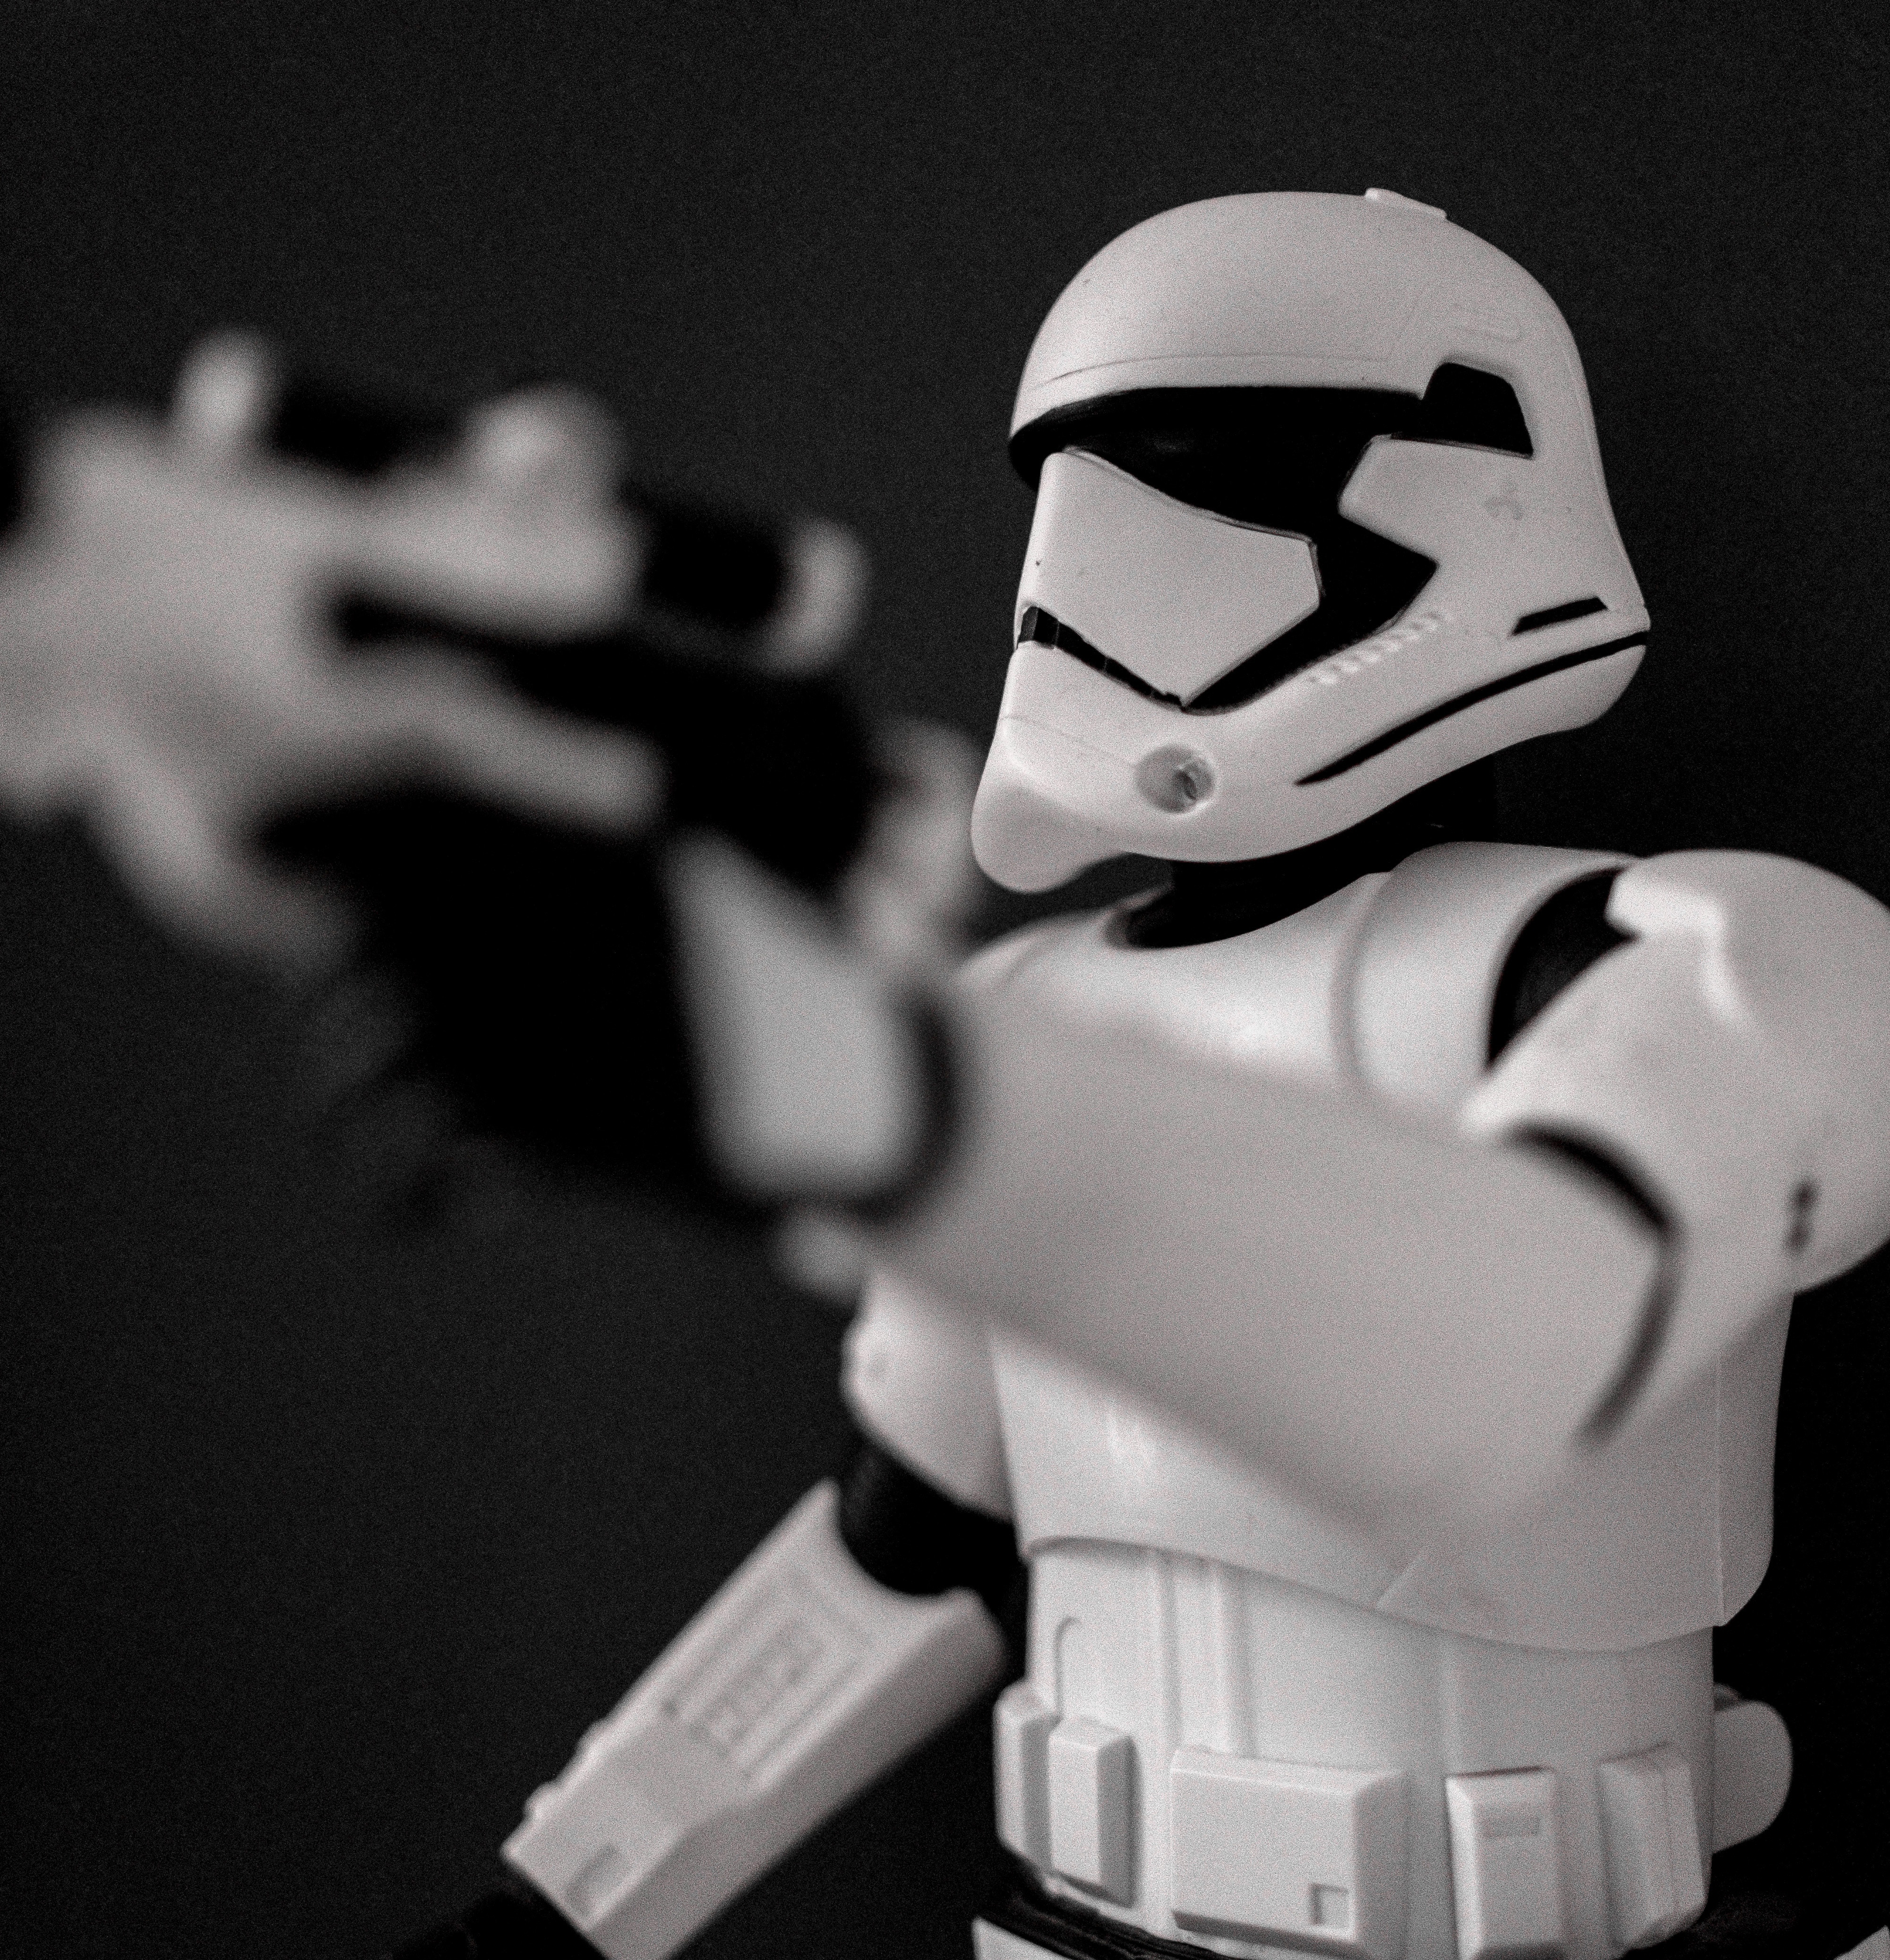 A photograph of a First Order Stormtrooper